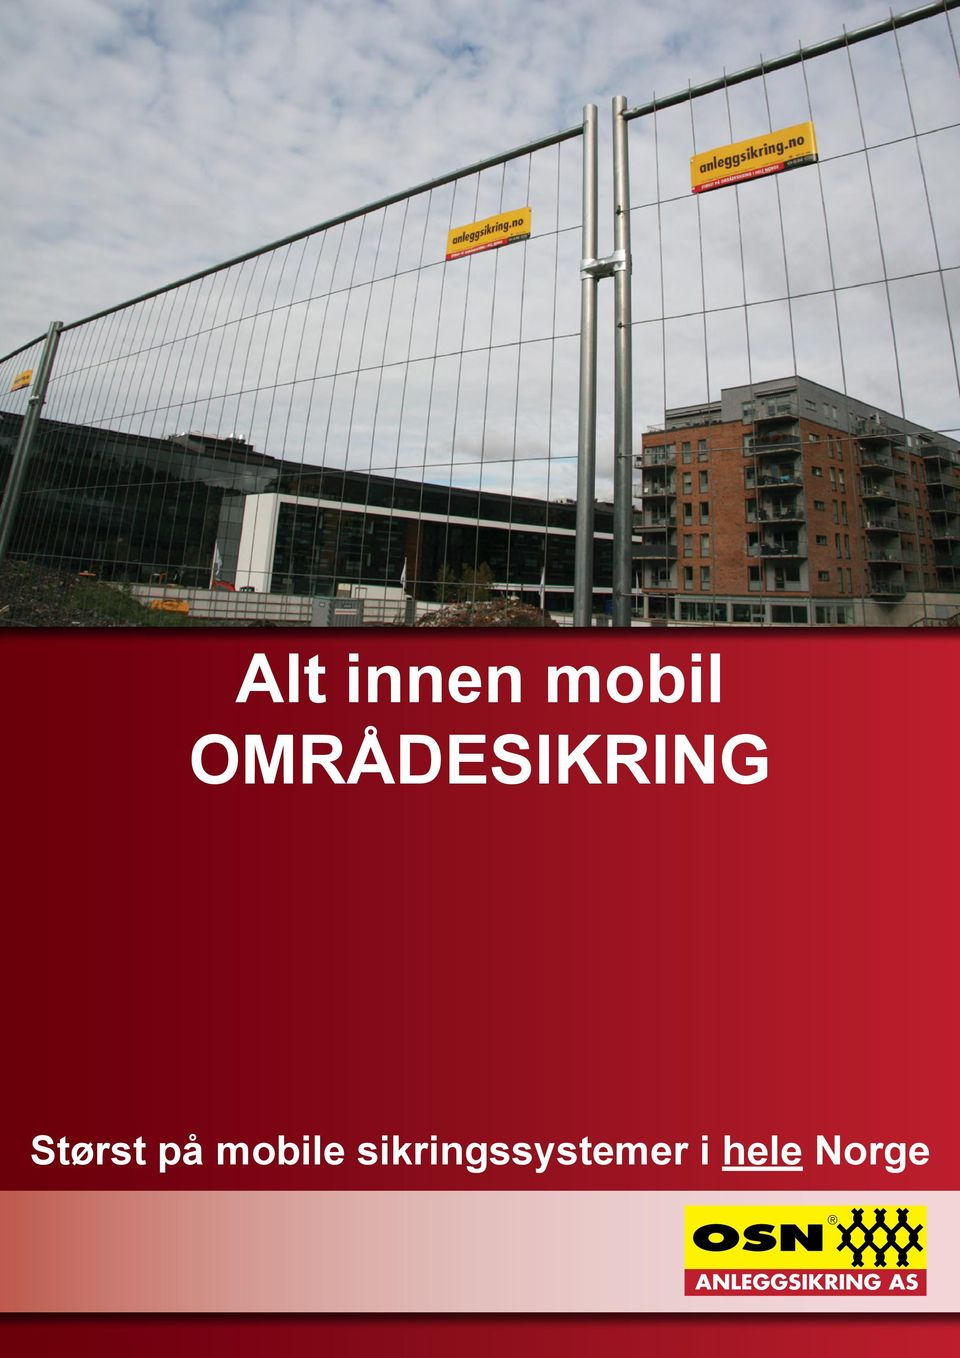 mobile sikringssystemer